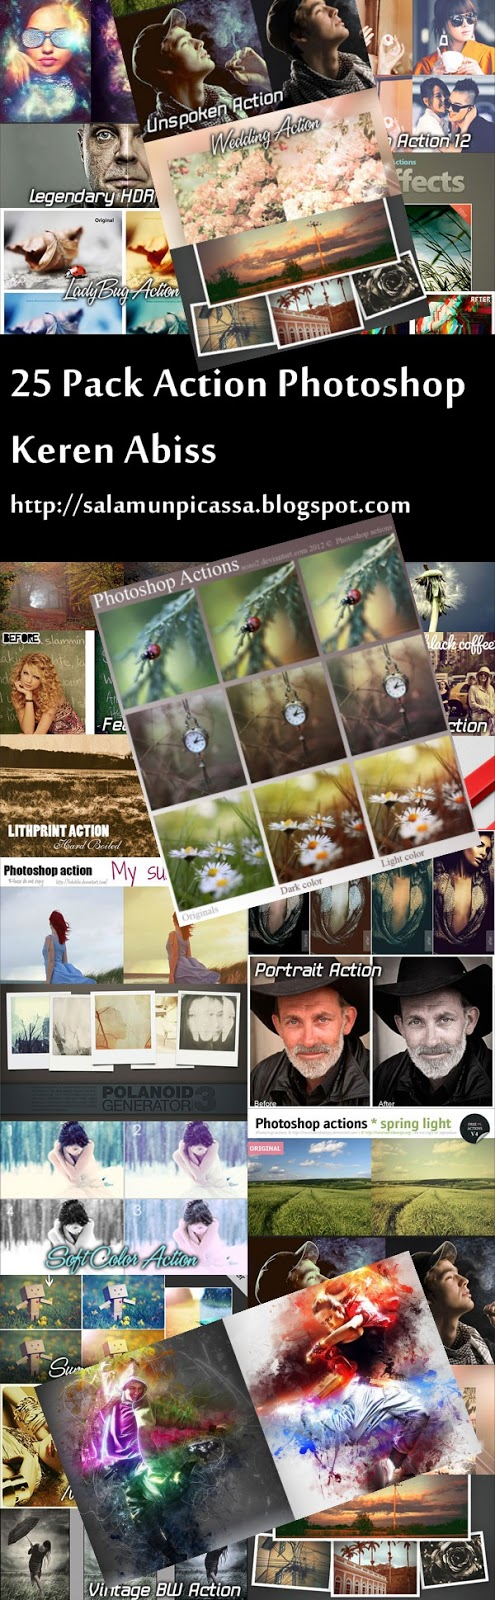 25 Pack Action Photoshop Keren Abiss